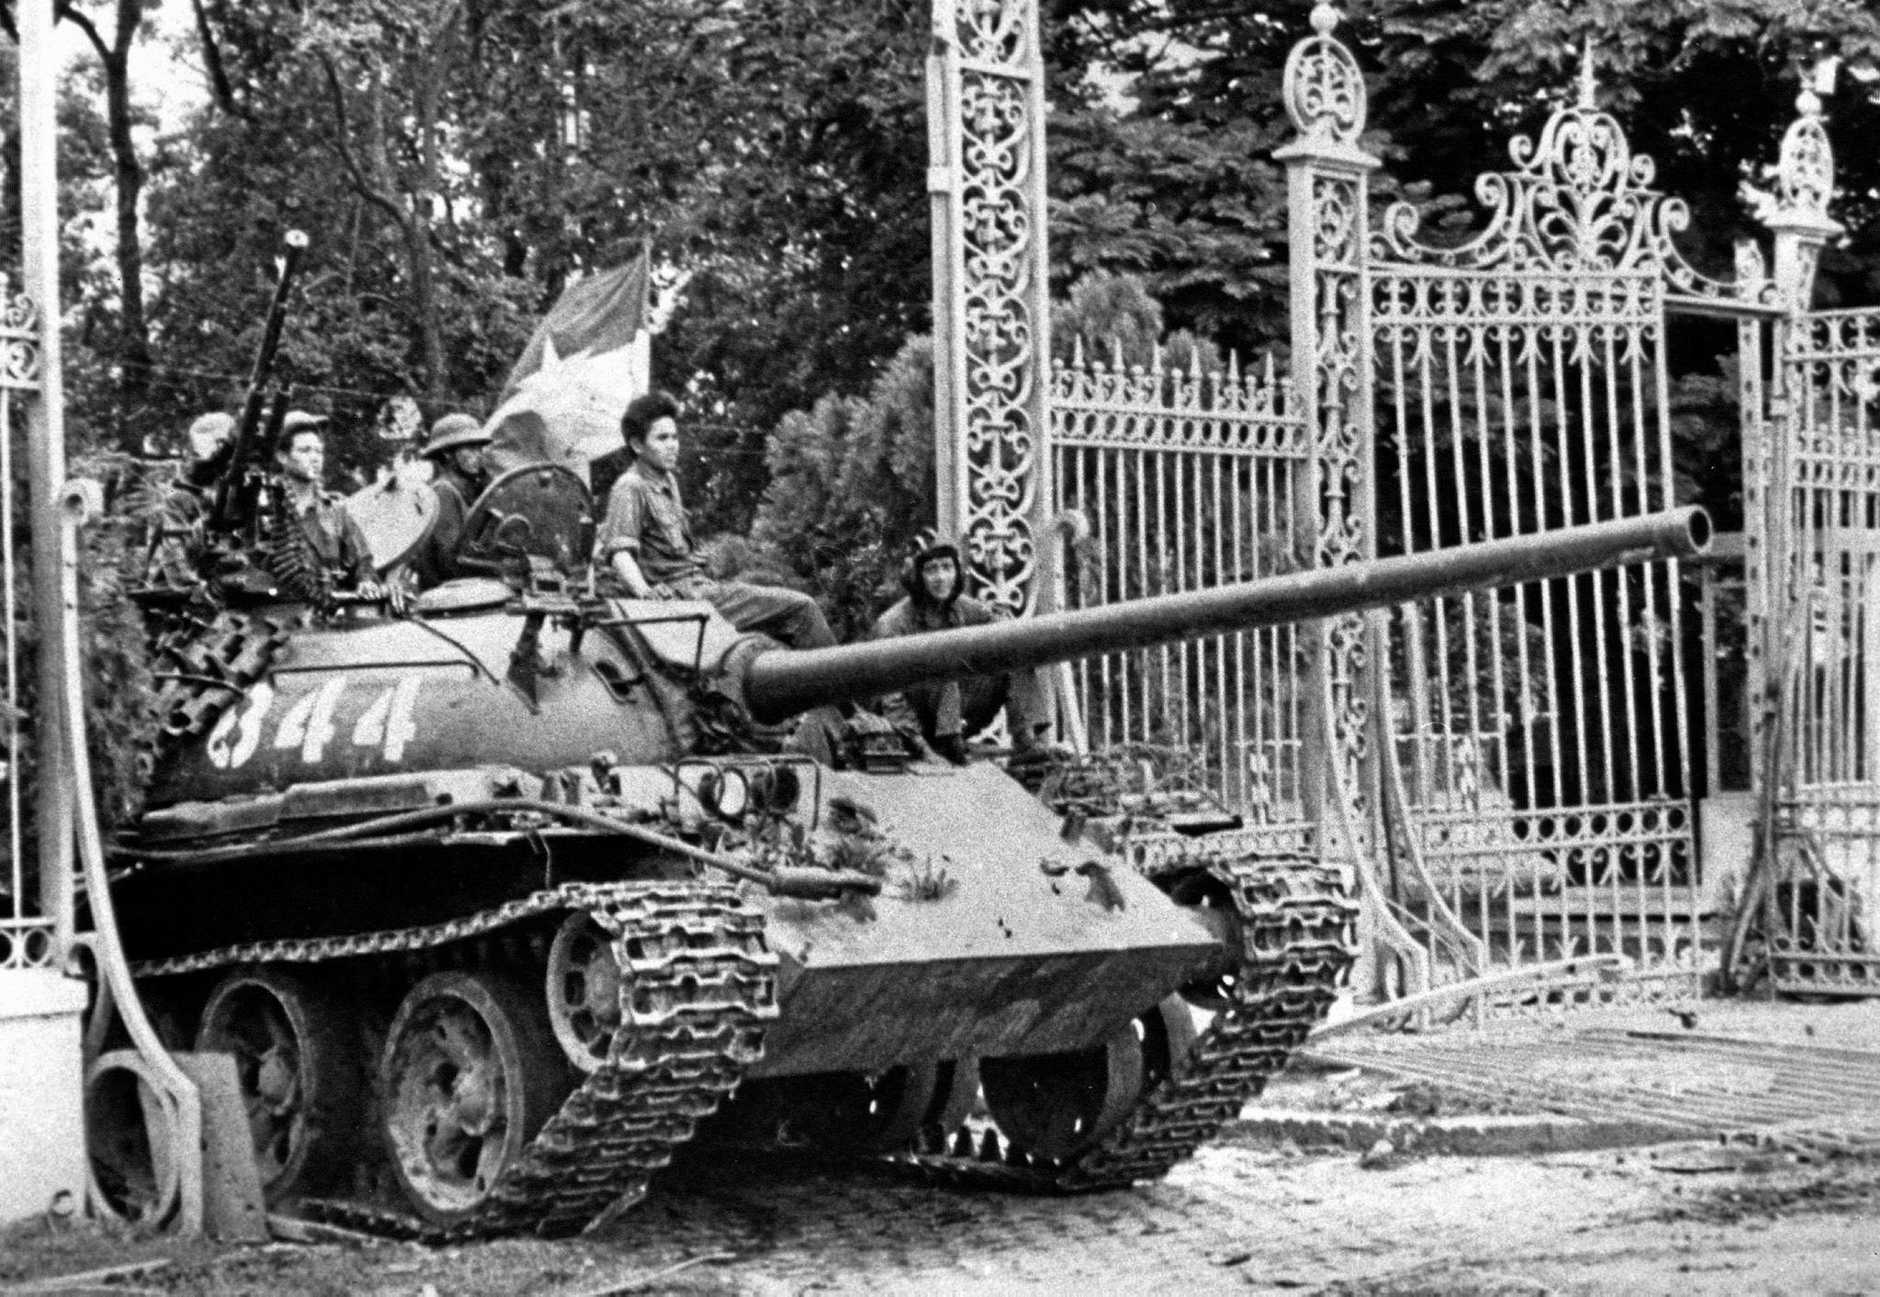 In this April 30, 1975 file photo, a North Vietnamese tank rolls through the gates of the Presidential Palace in Saigon, signifying the fall of South Vietnam. The war ended on April 30, 1975, with the fall of Saigon, now known as Ho Chi Minh City, to communist troops from the north. (AP Photo/File)